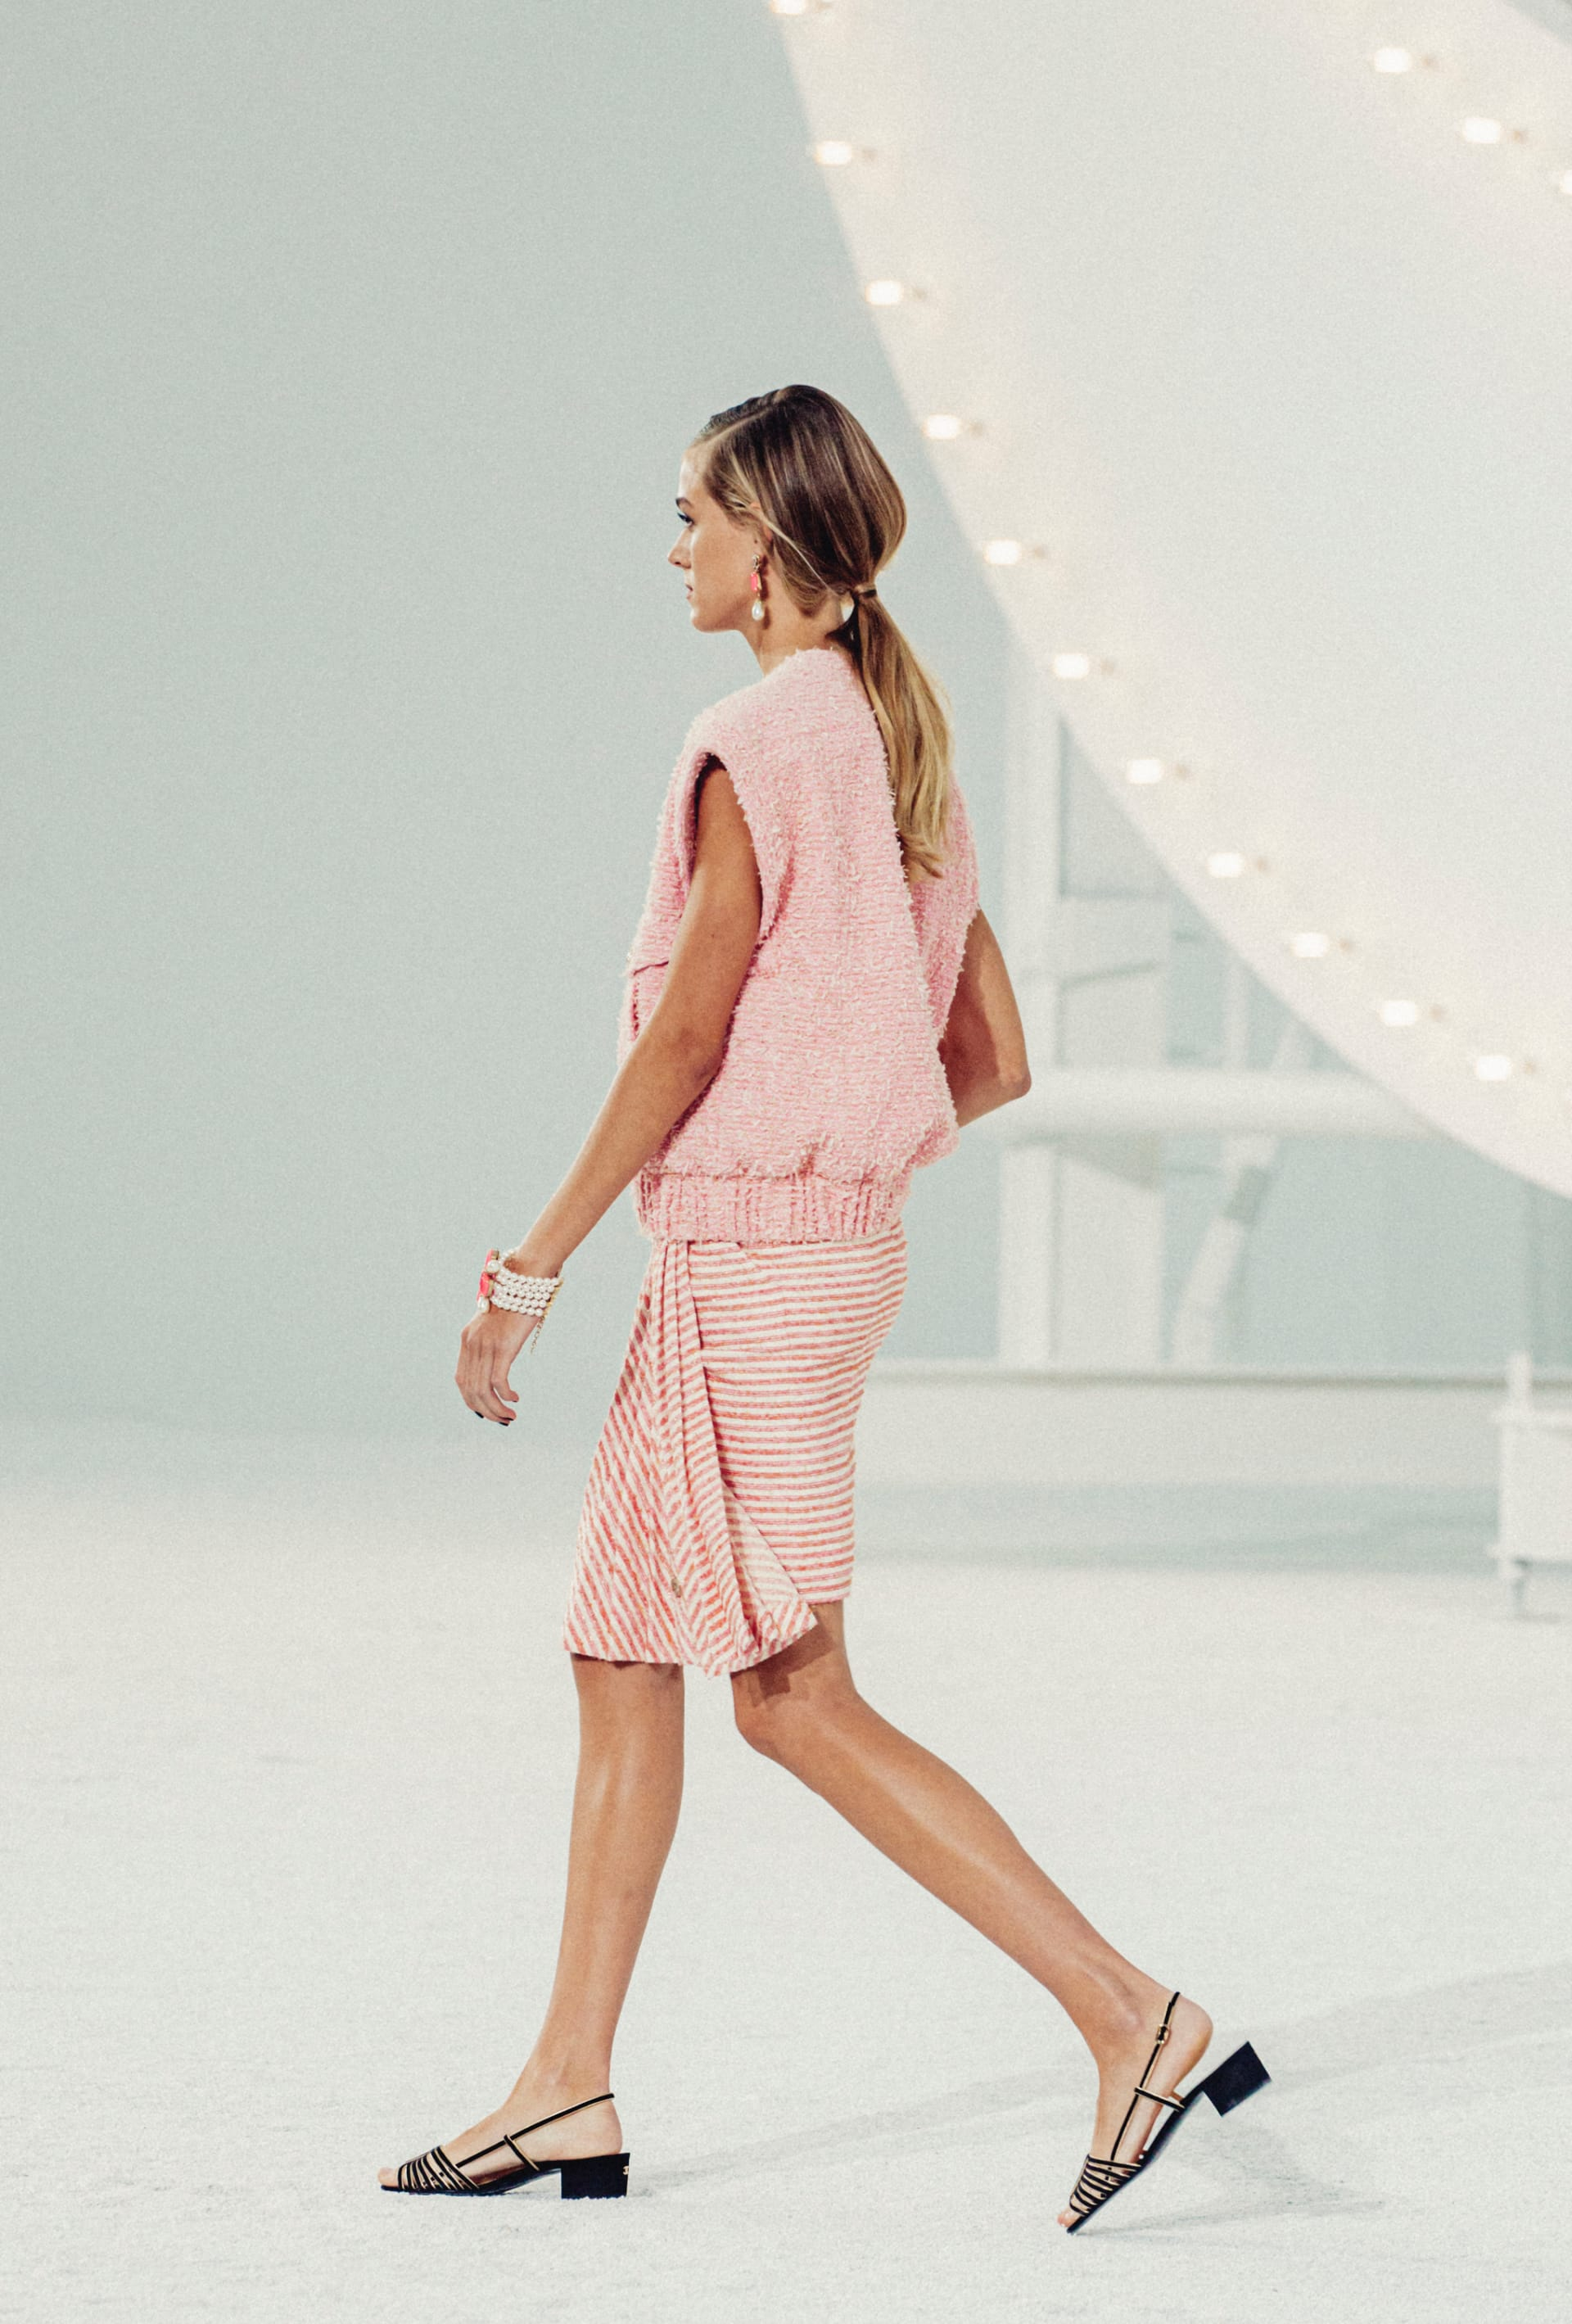 View 3 - Look 41 - Spring-Summer 2021 - see full sized version